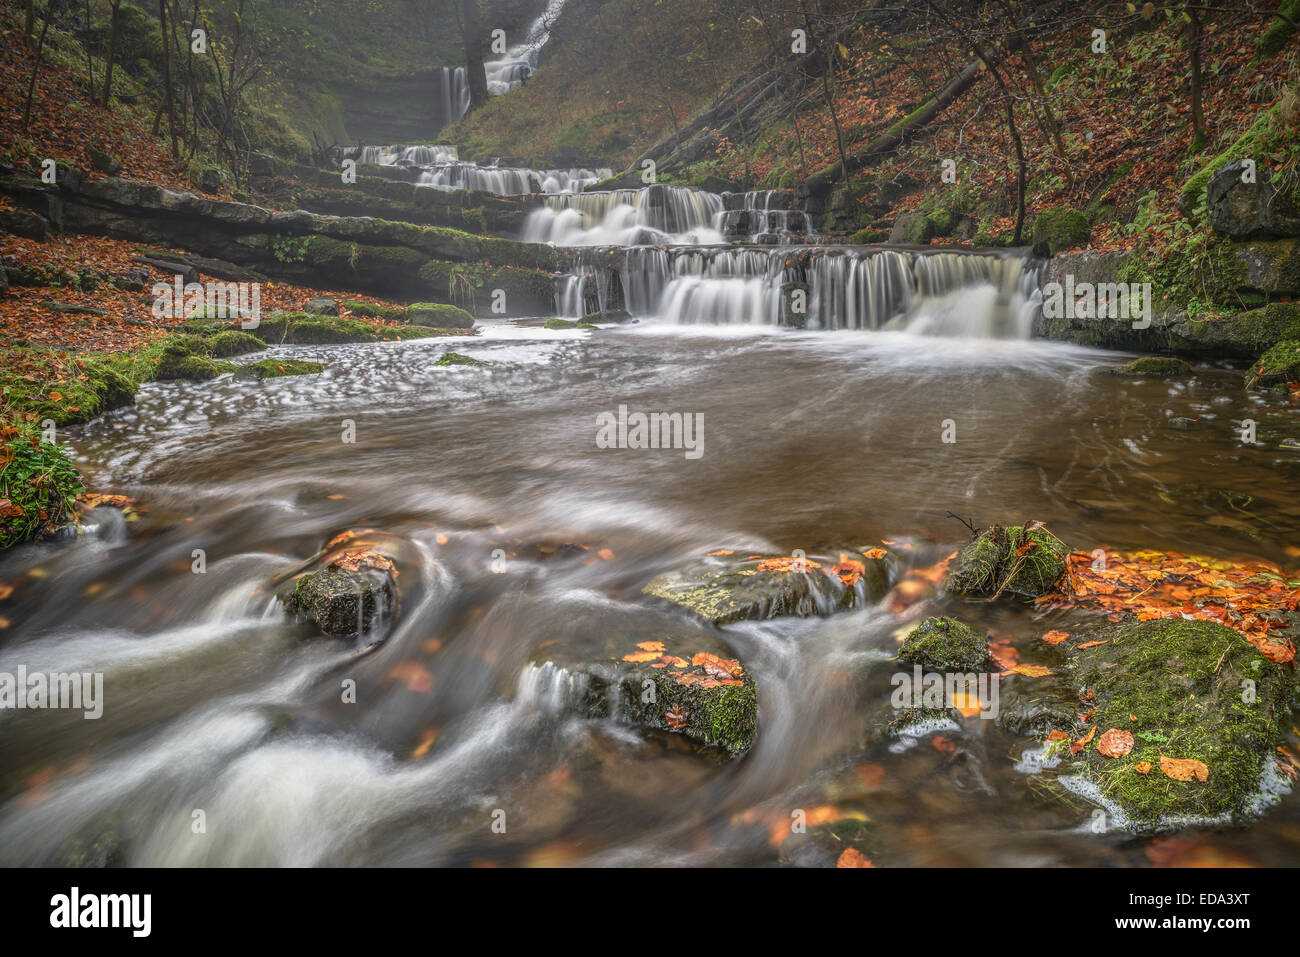 A series of smaller waterfalls at the famous Scalebar force, Yorkshire Dales - Stock Image